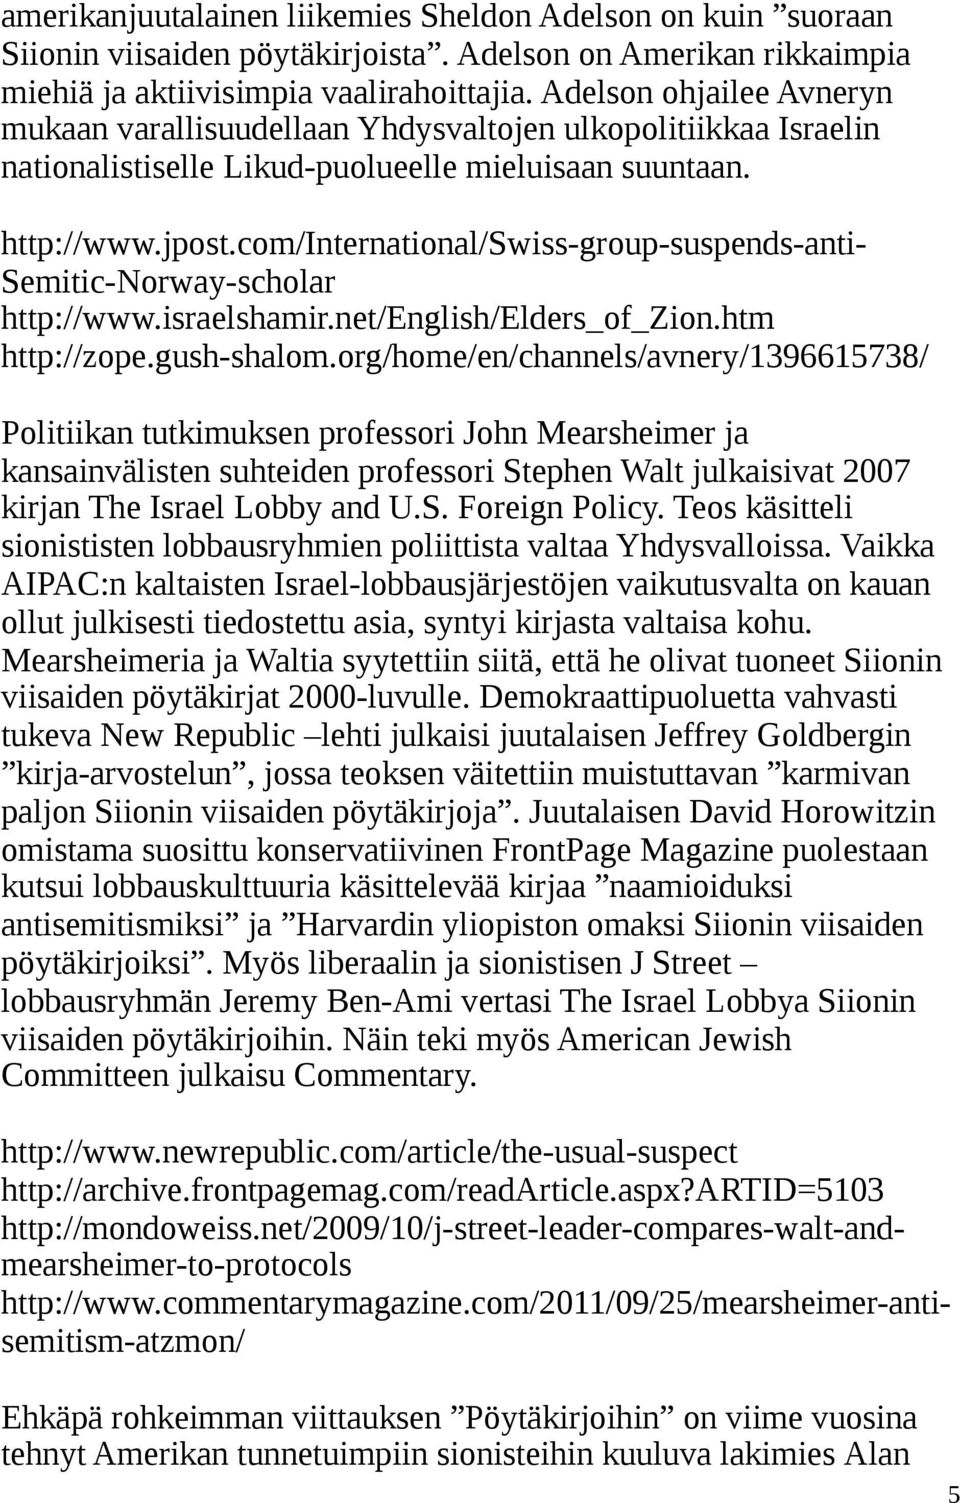 com/international/swiss-group-suspends-anti- Semitic-Norway-scholar http://www.israelshamir.net/english/elders_of_zion.htm http://zope.gush-shalom.